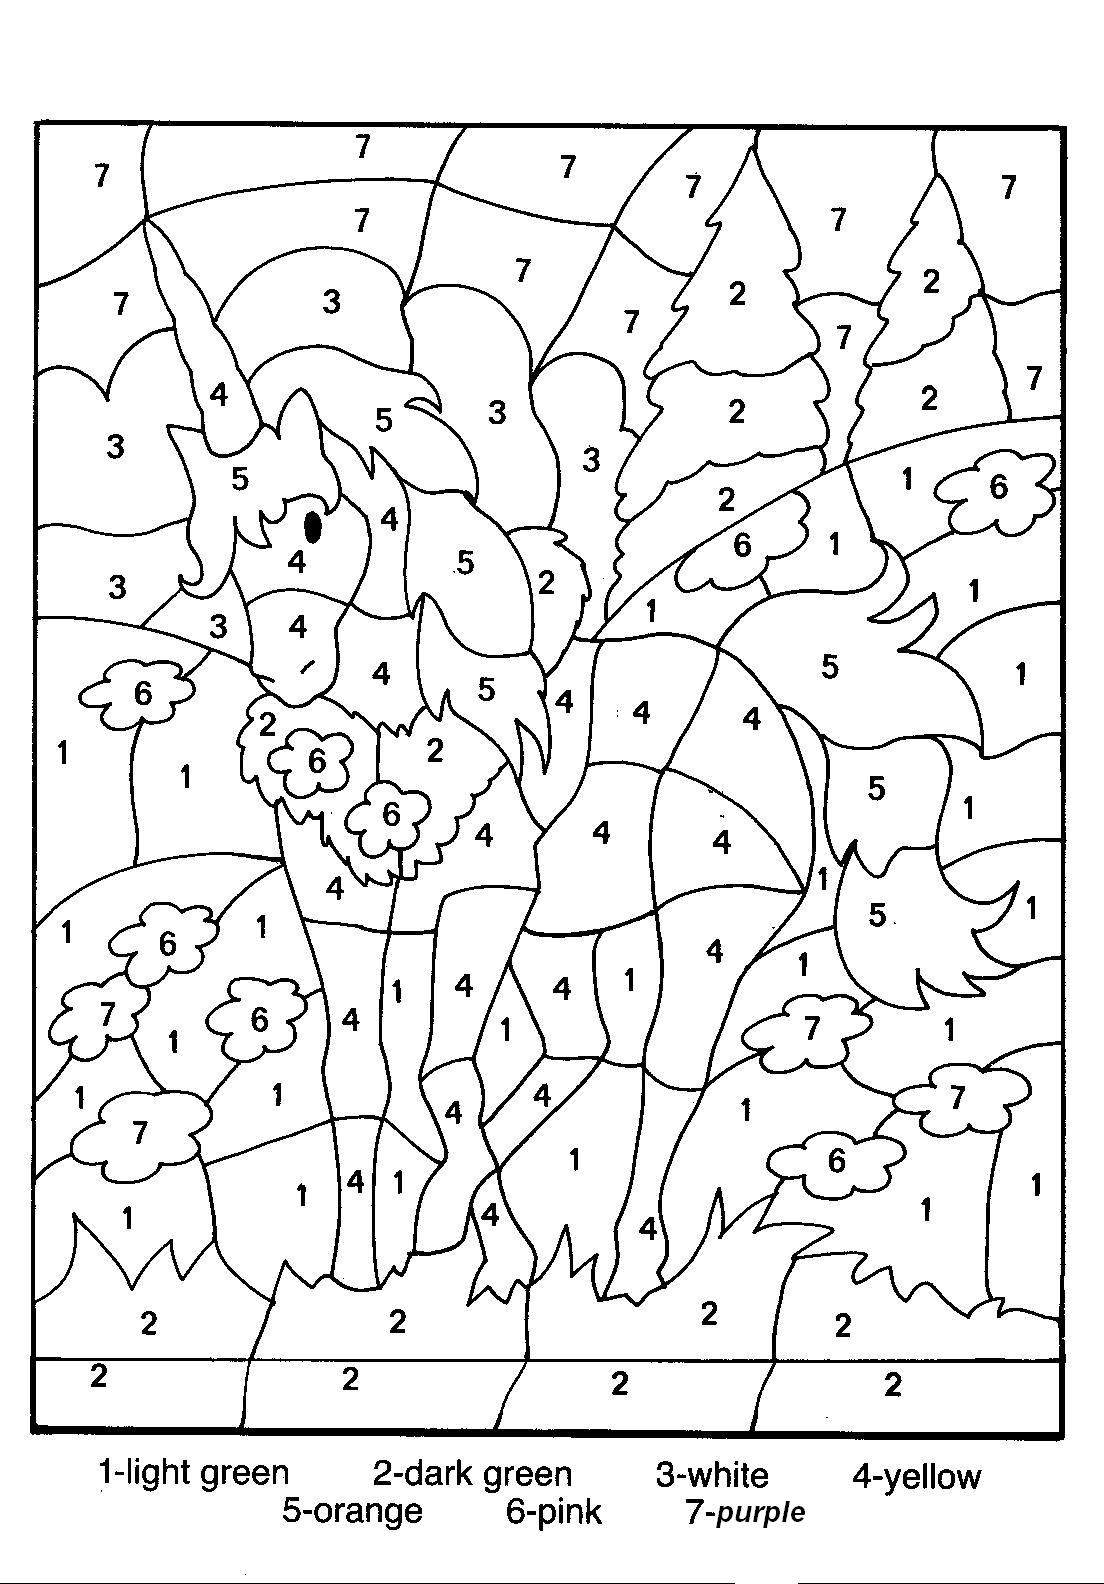 number coloring pages free printable - photo#3